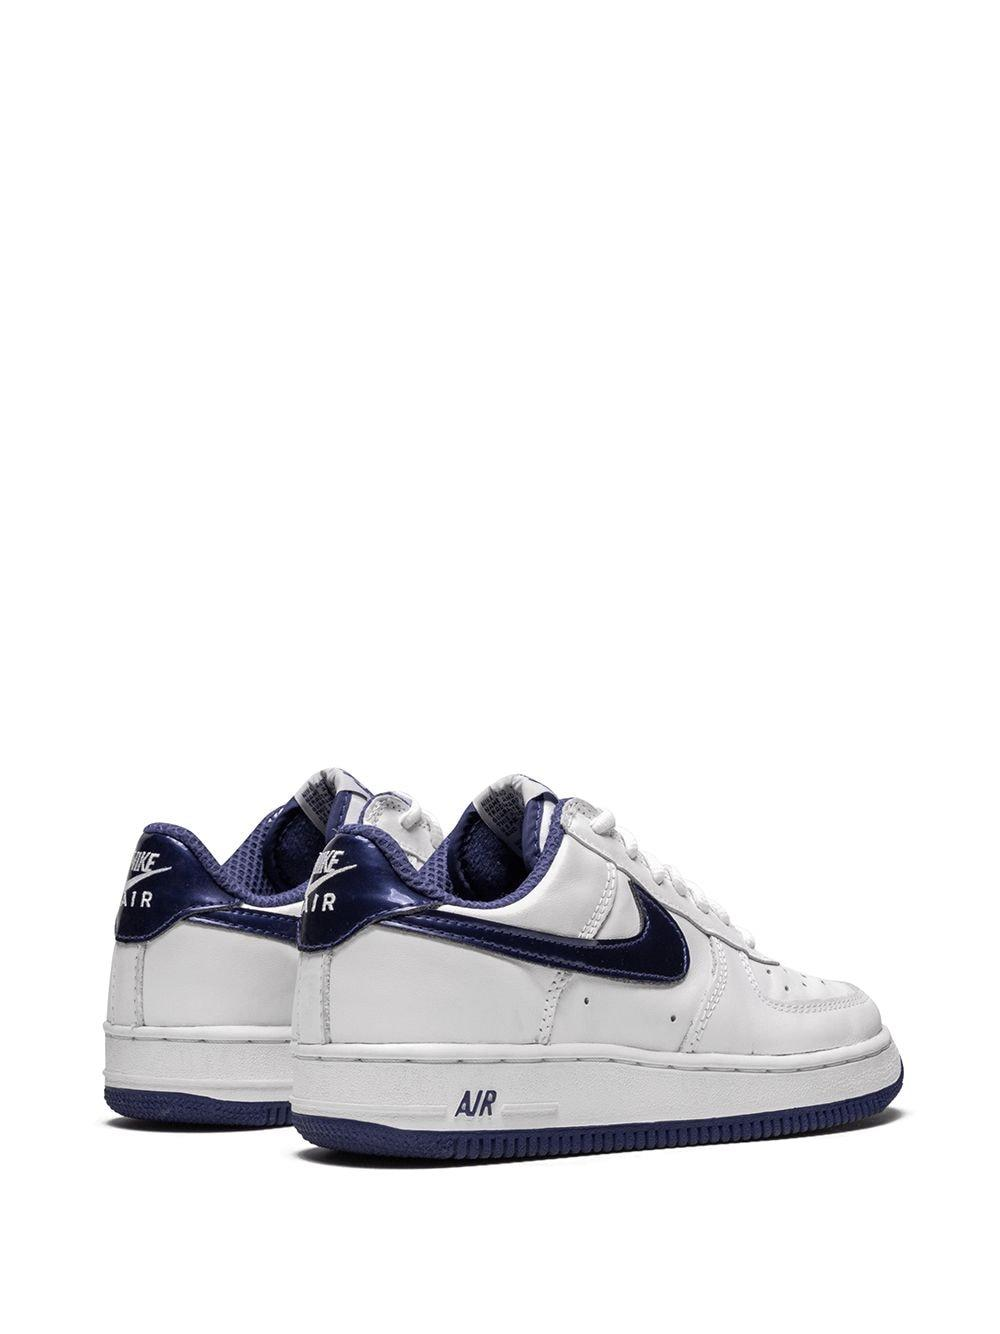 Zapatillas Air Force 1 B Nike de Caucho de color Blanco